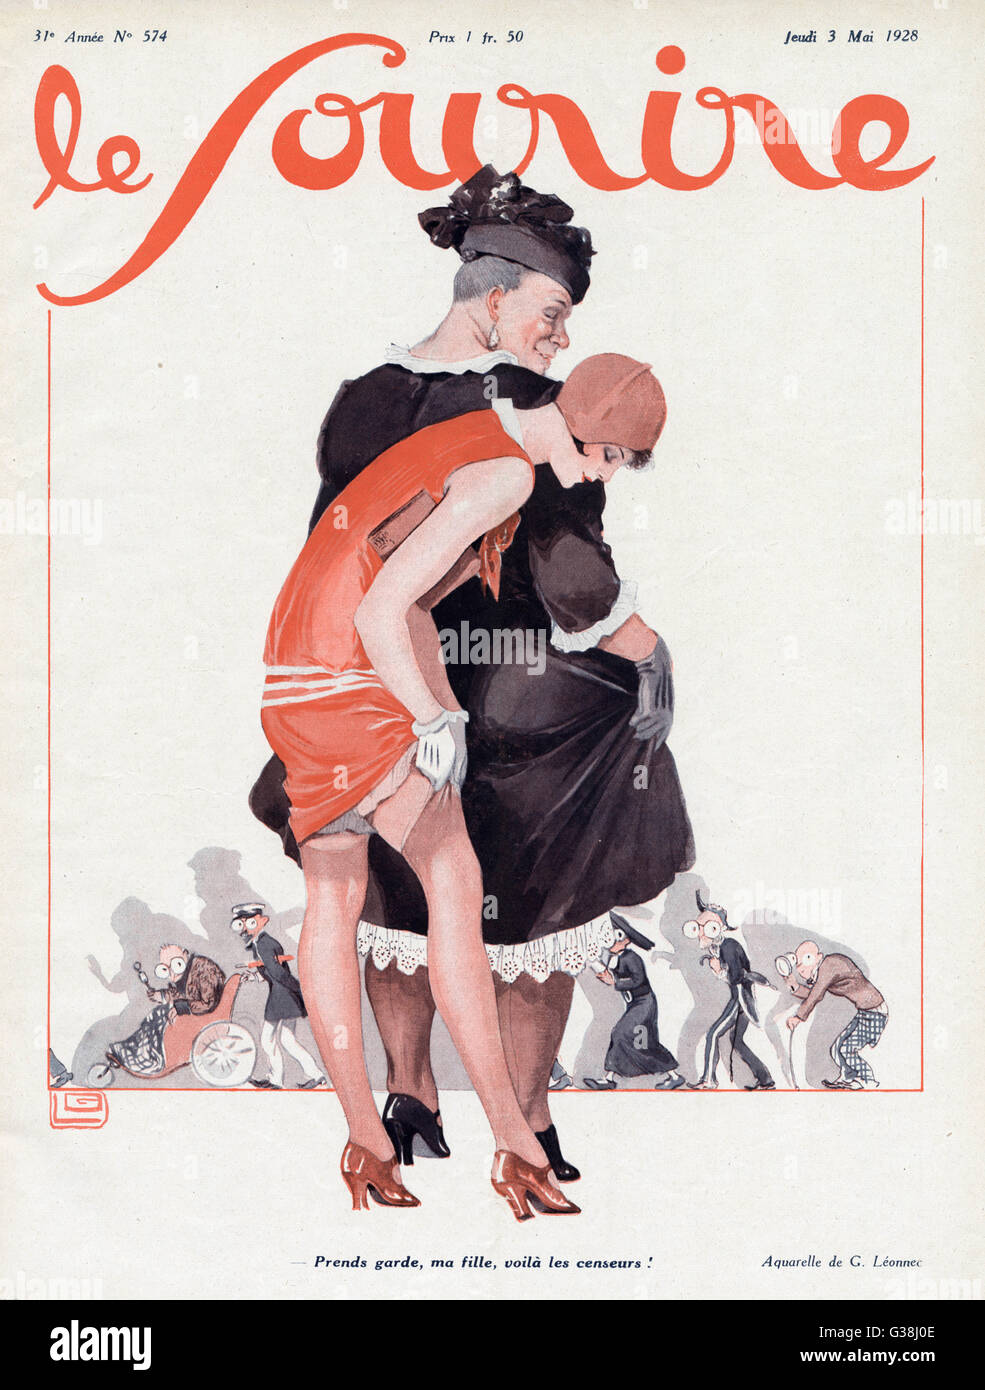 - Take care, girl : look out  for the censors !         Date: 1928 - Stock Image